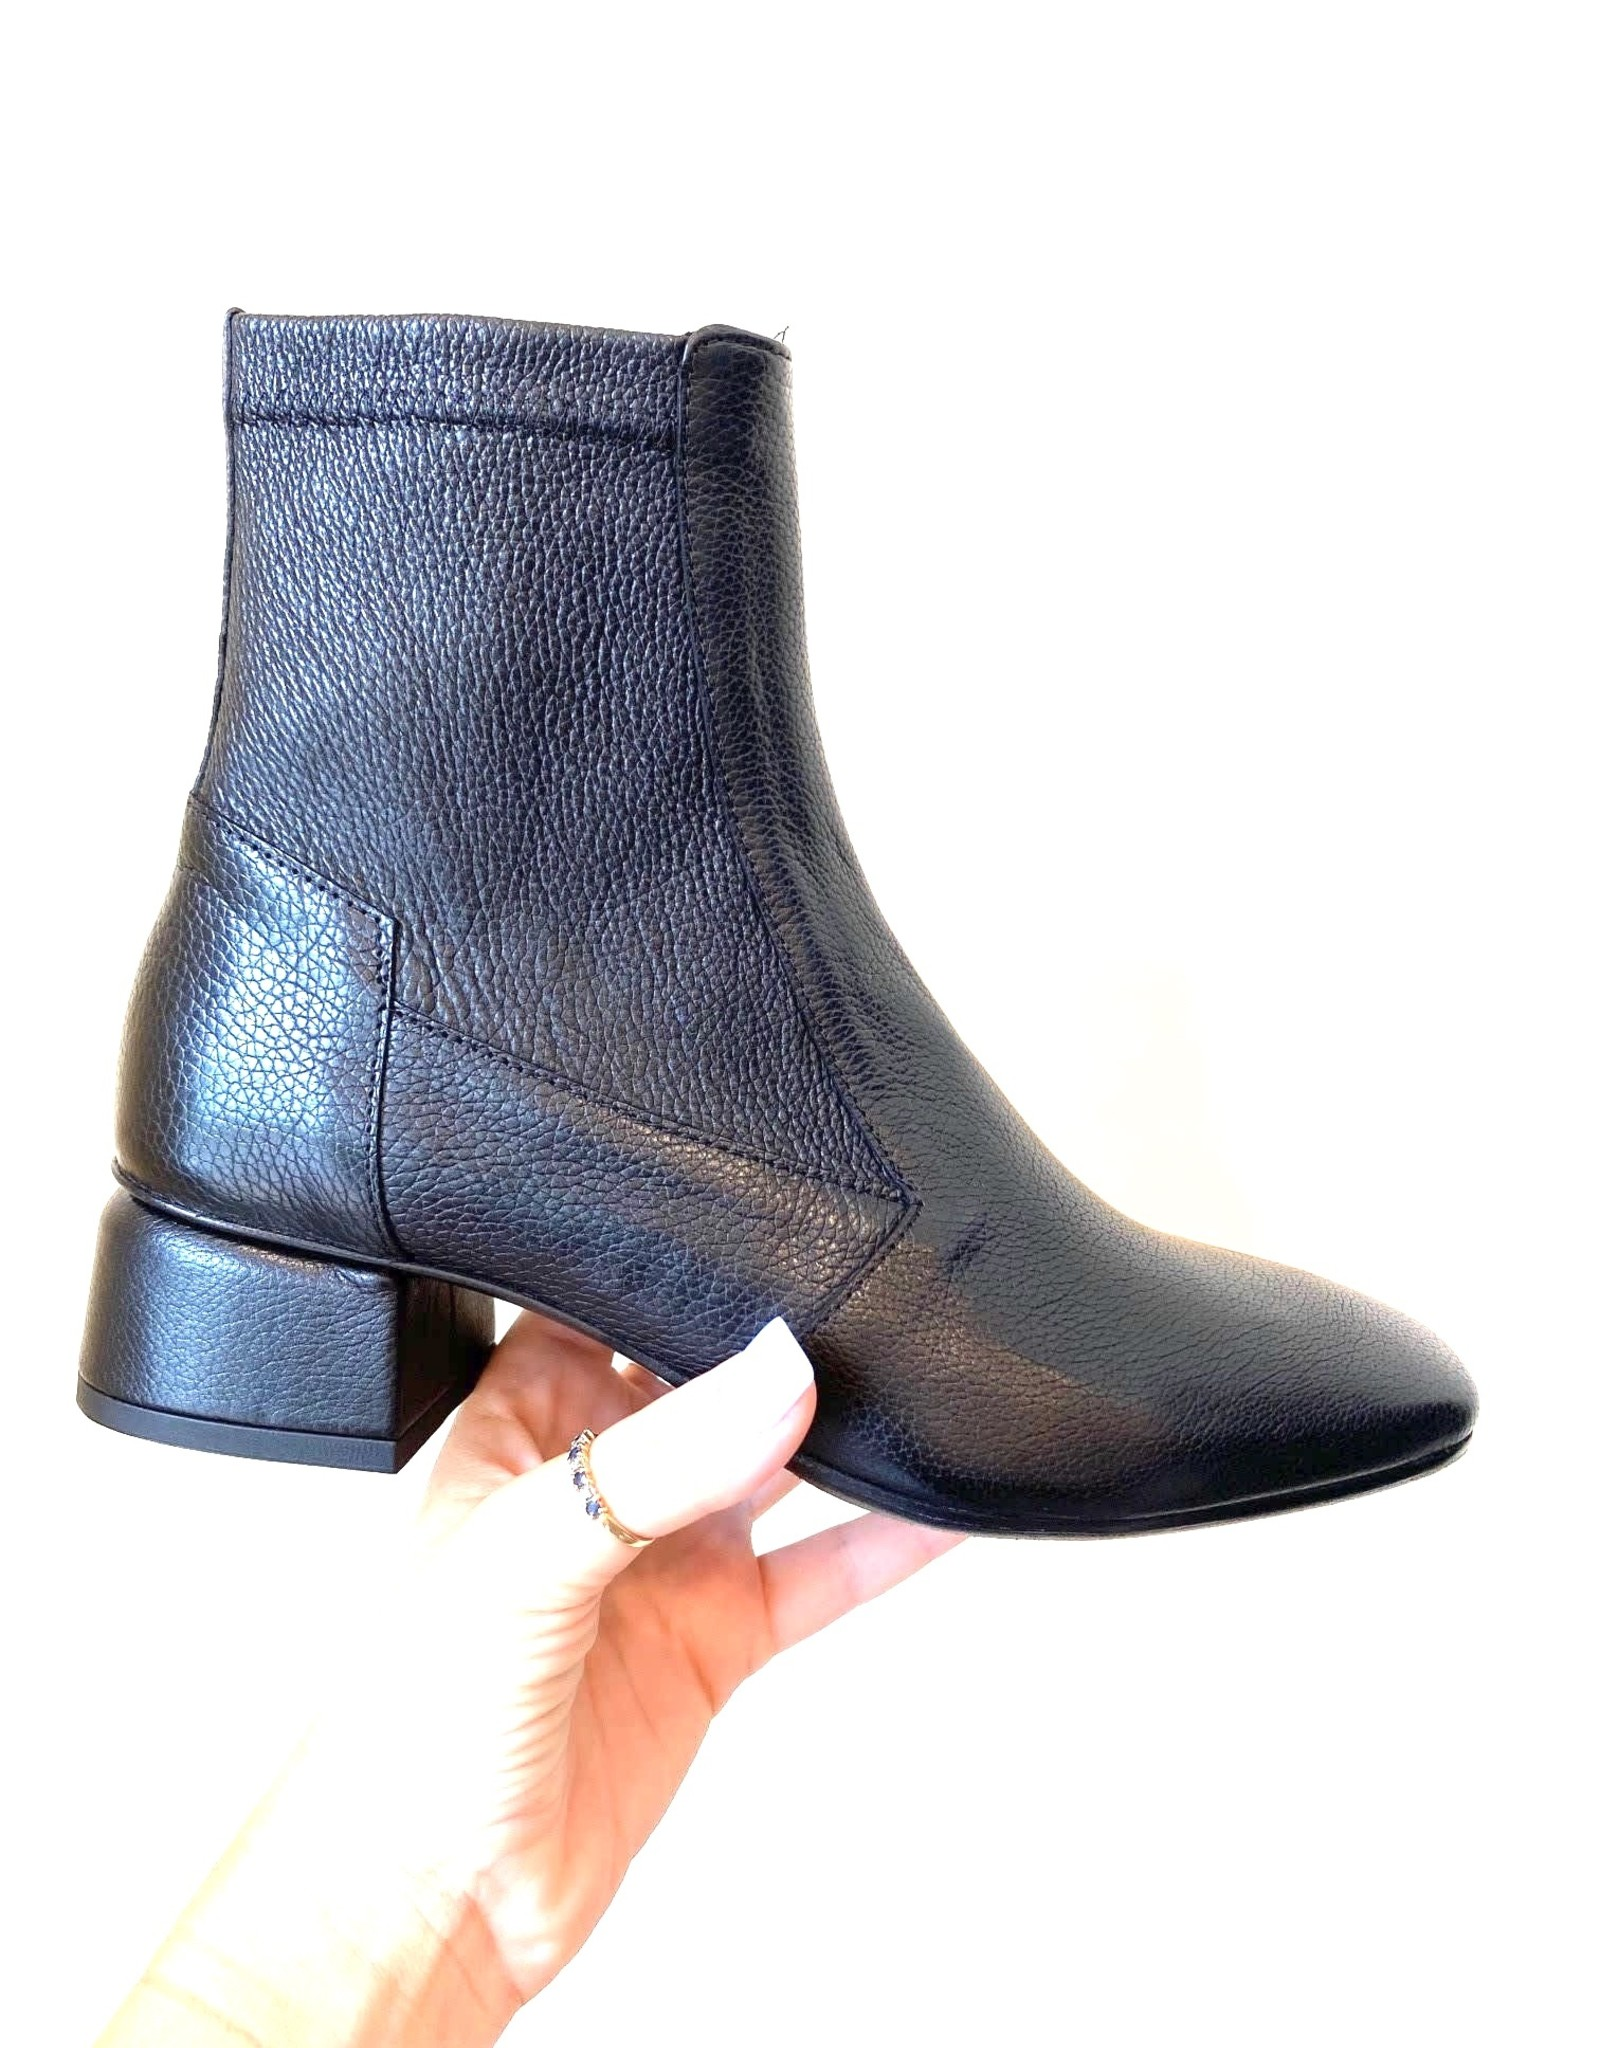 HOMERS - Stretch Calf Ankle Boot